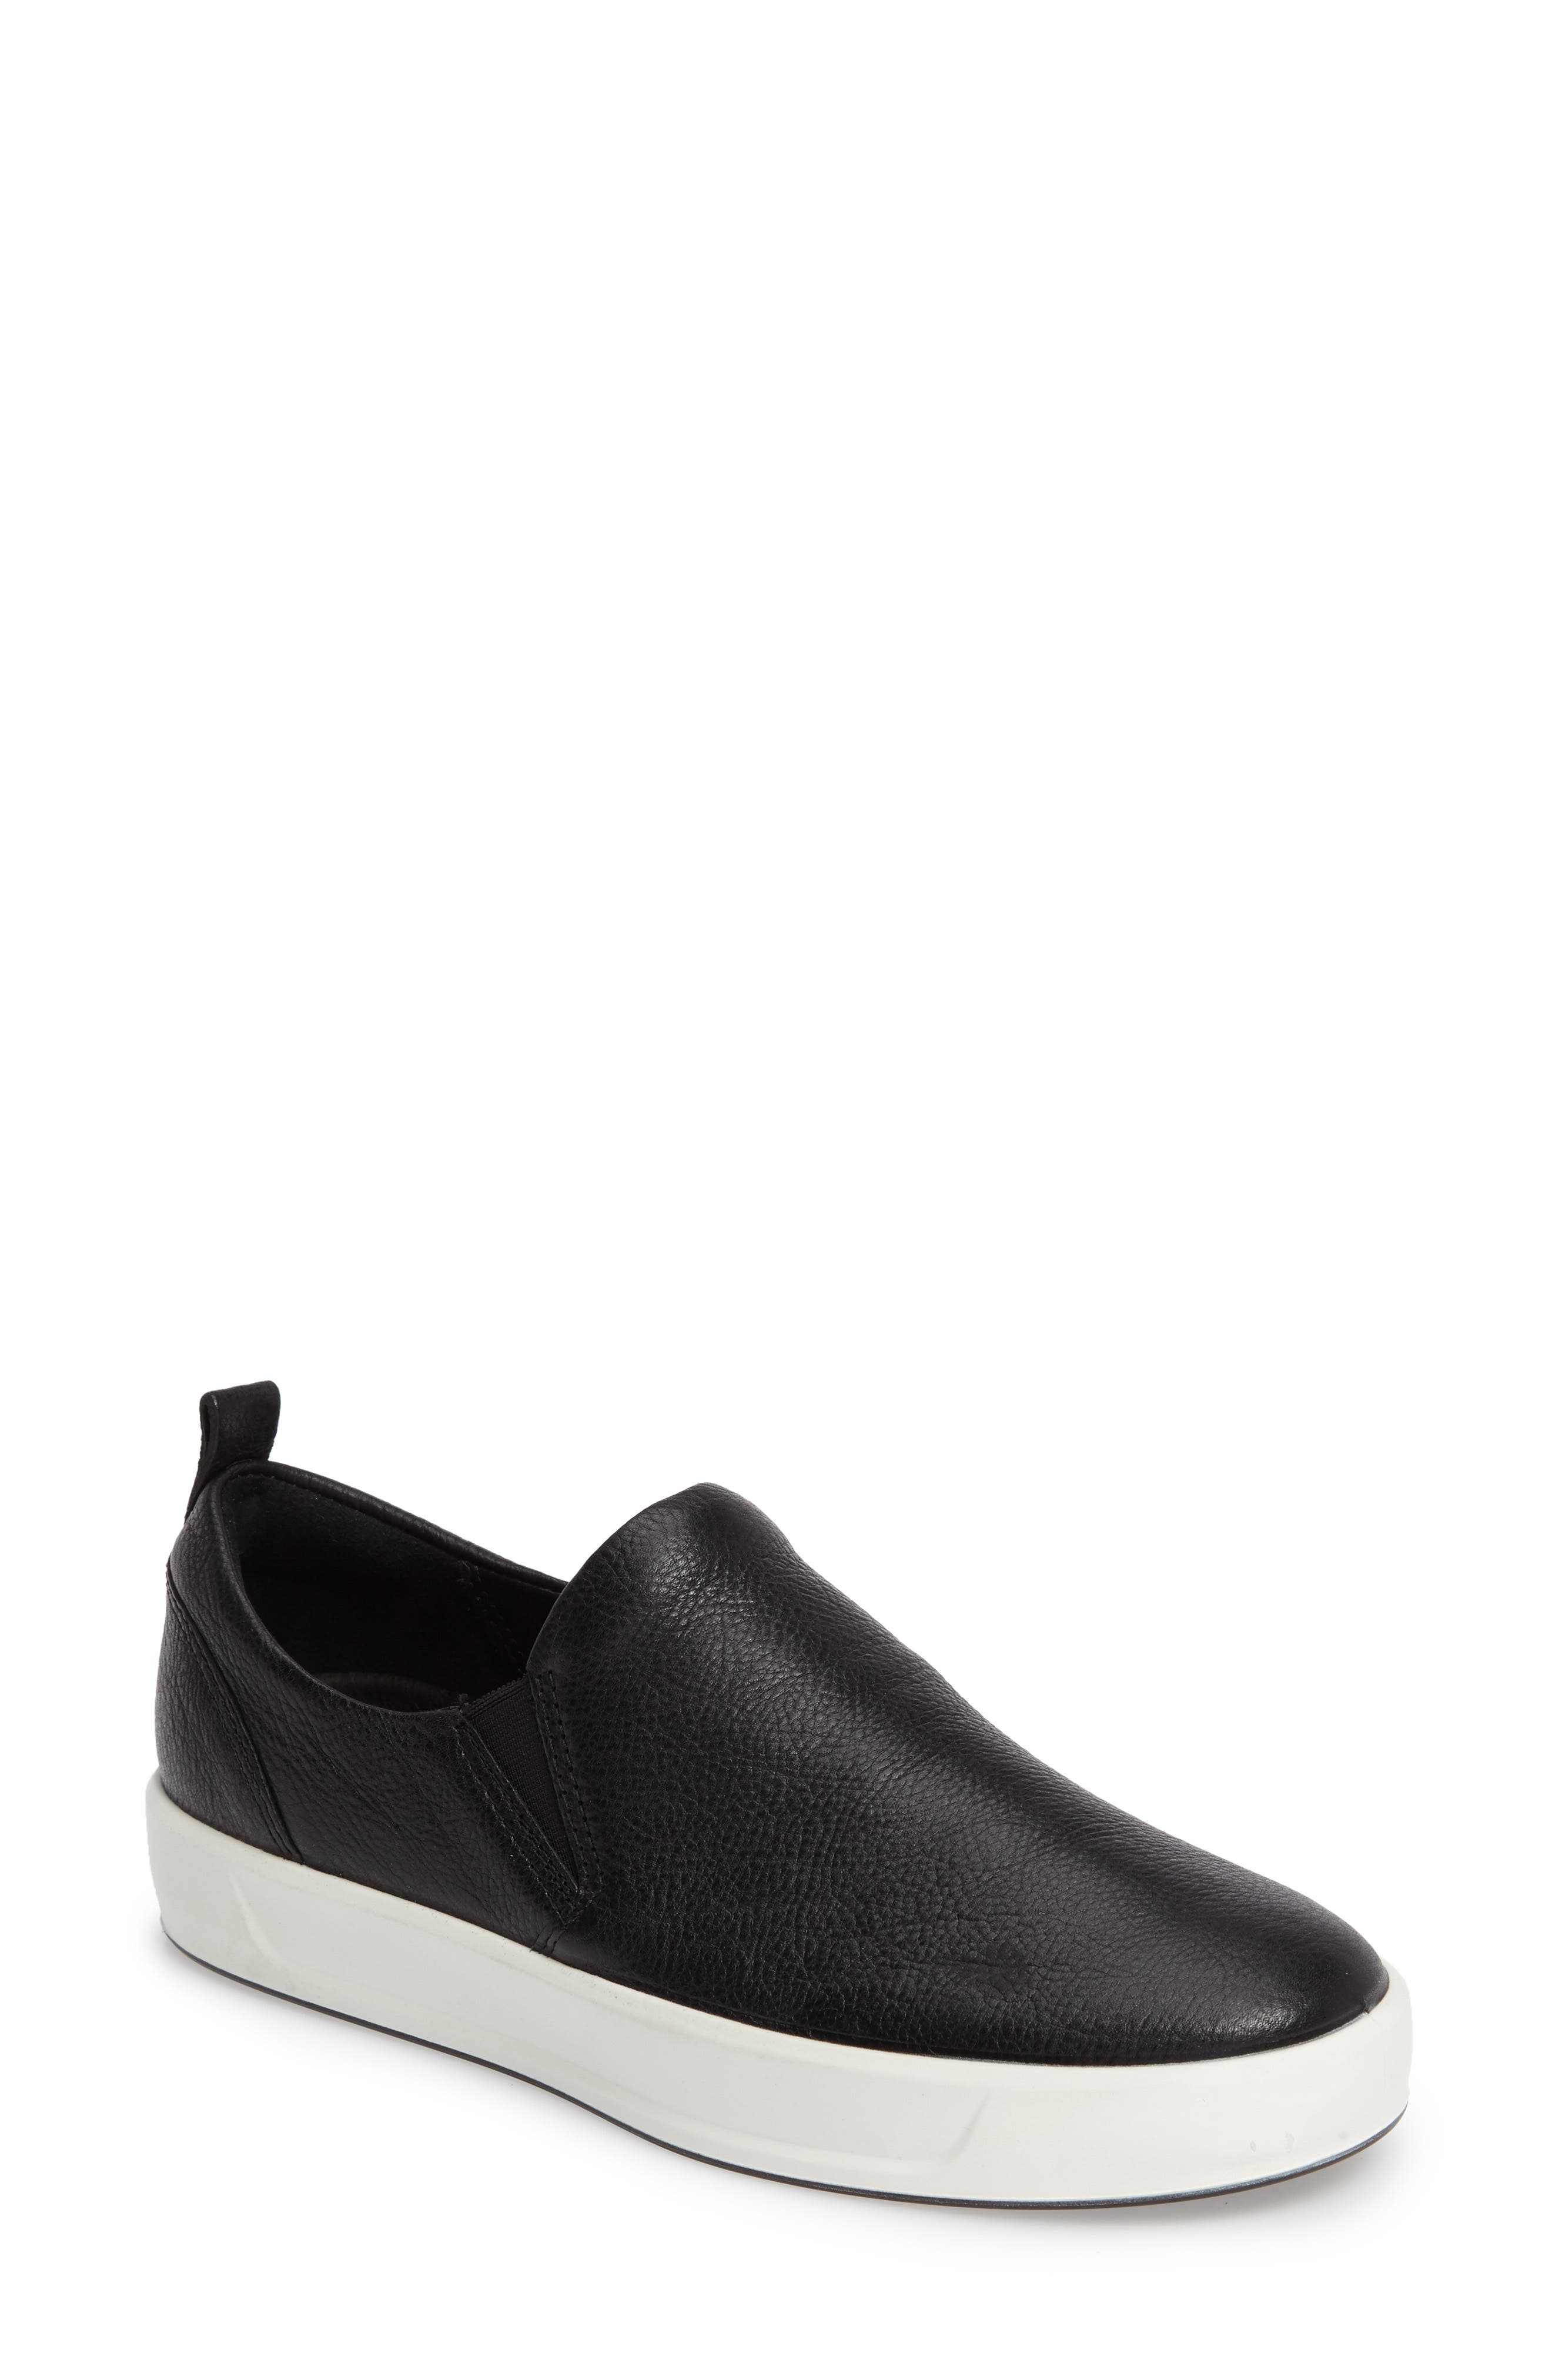 Main Image - ECCO Soft 8 Slip-On Sneaker (Women)